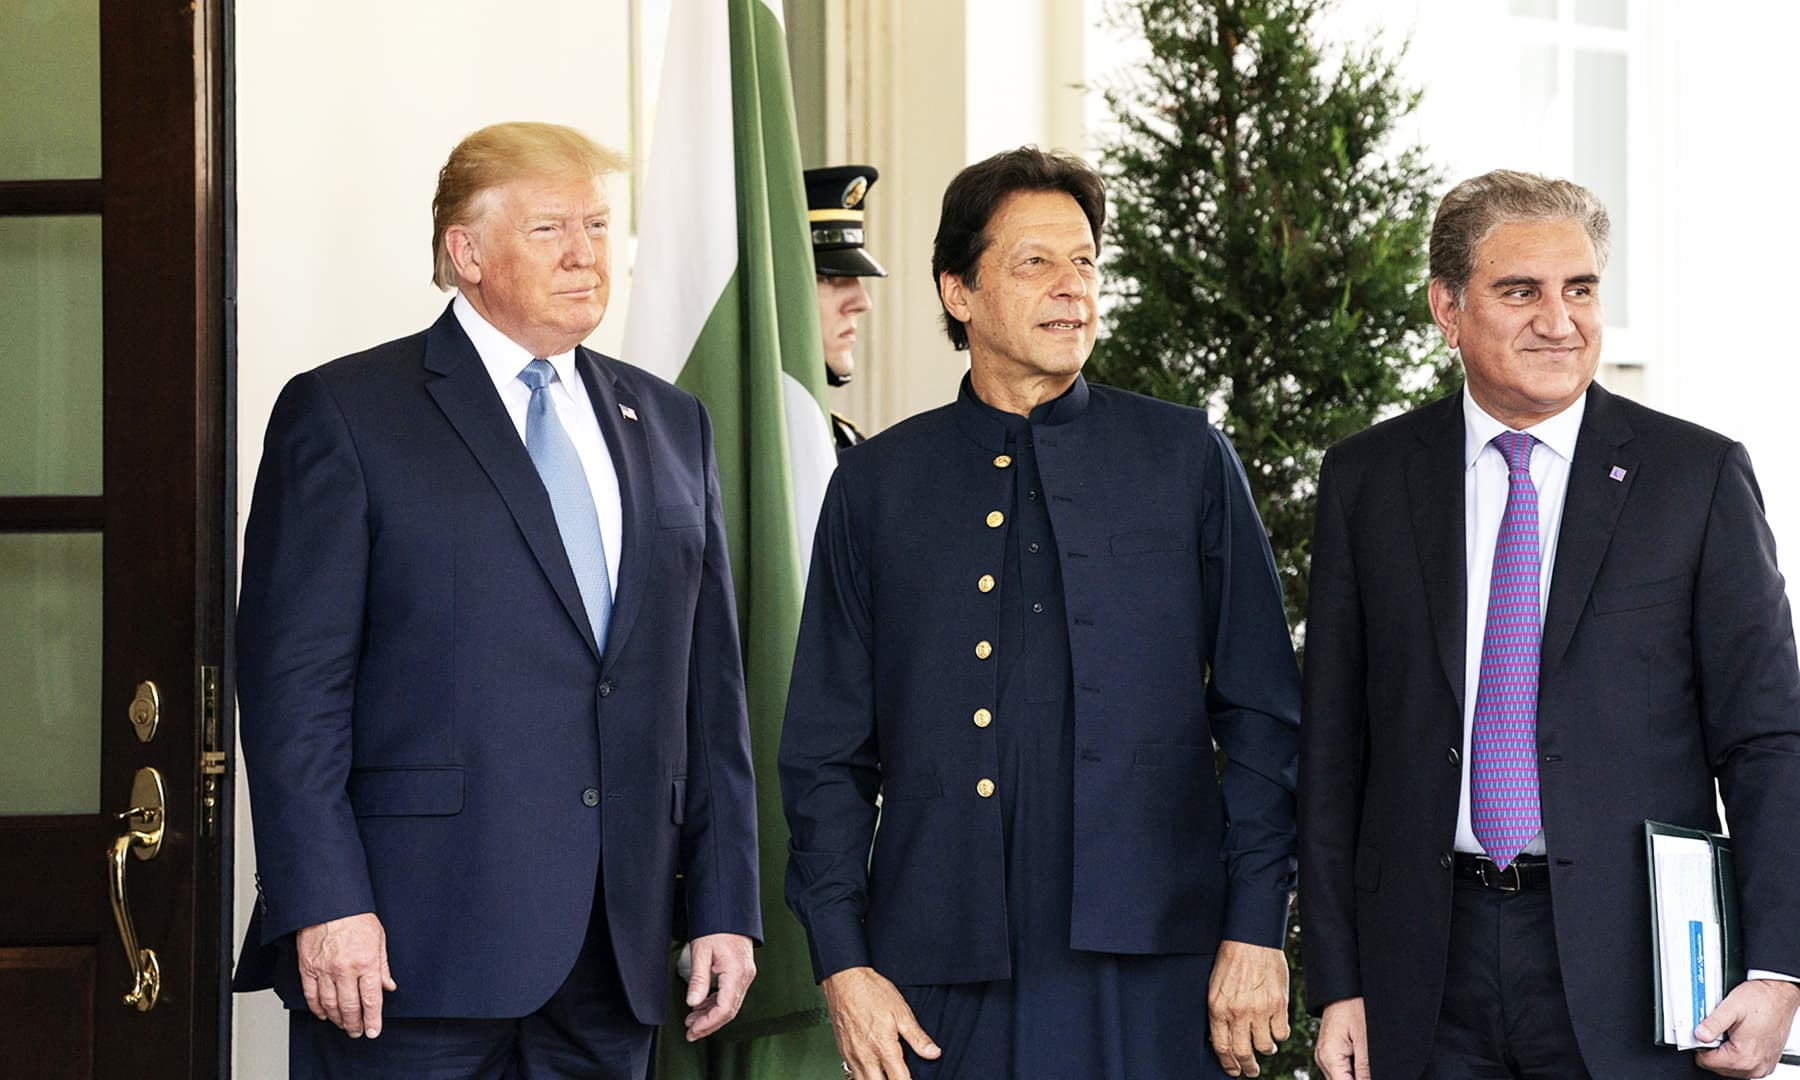 Foreign Minister Shah Mahmood Qureshi pictured with PM Imran and President Trump.  — Photo courtesy White House Flickr